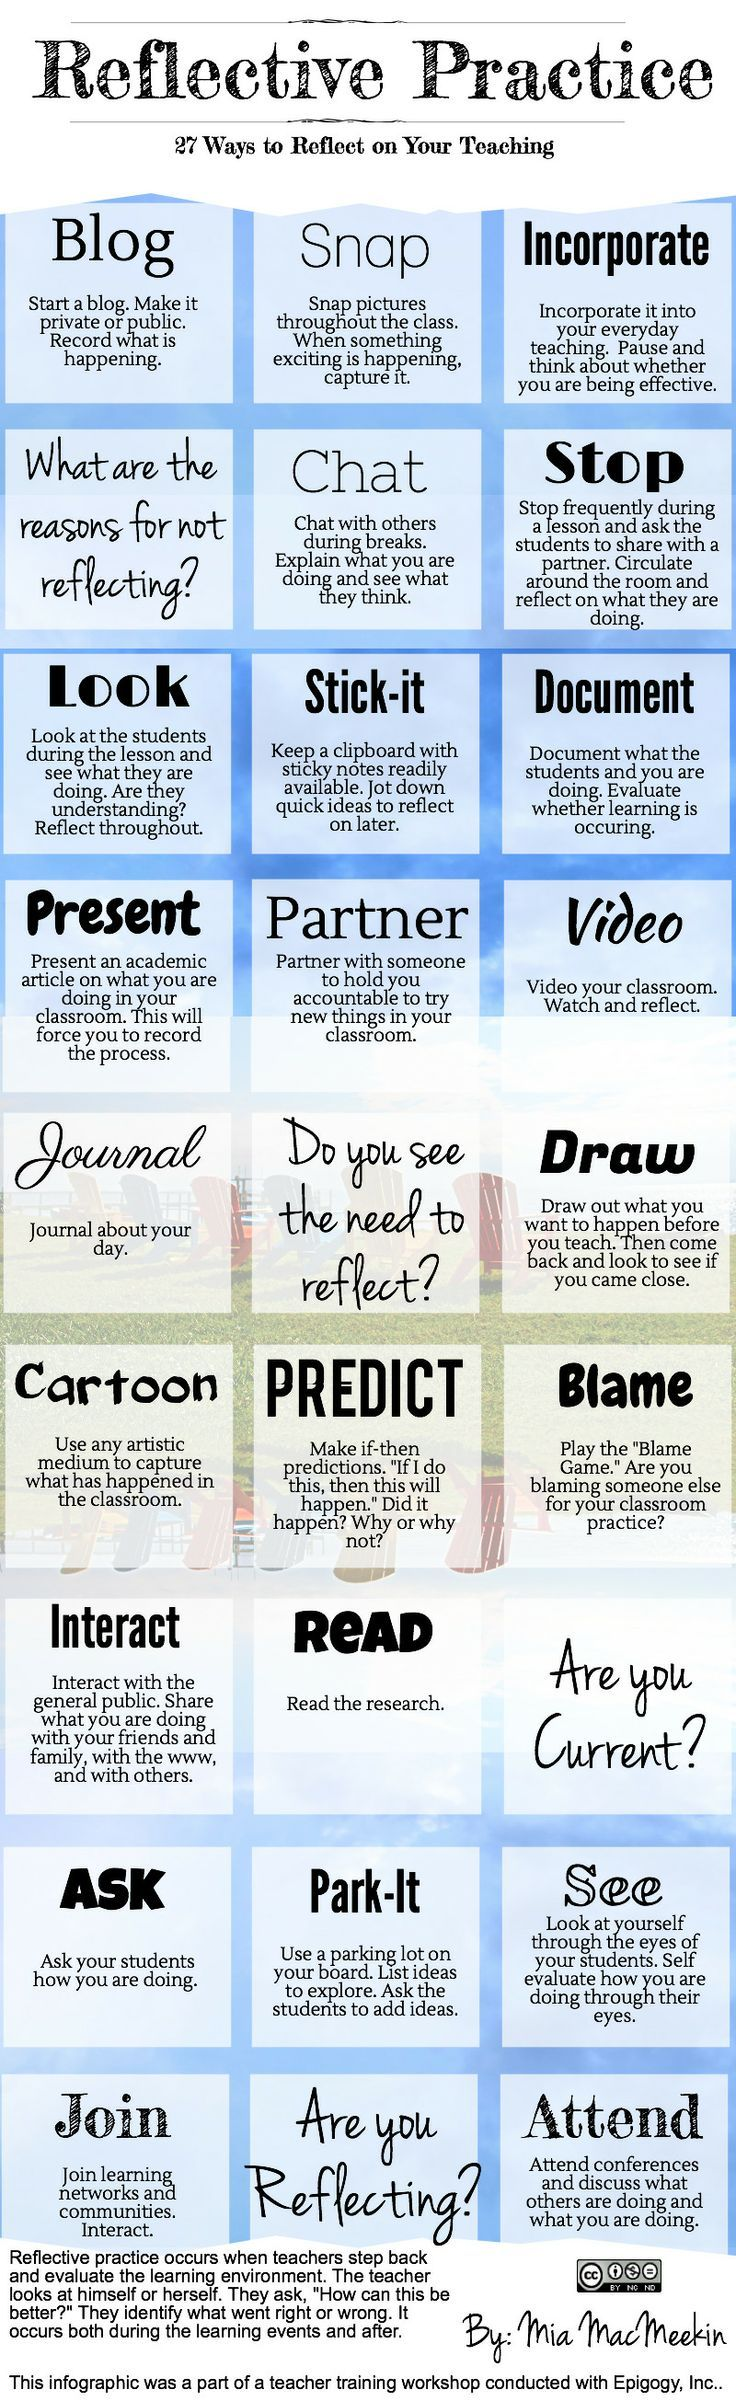 Reflection is an important part of professional development! 27 ways to reflect on your teaching #edchat #education #sltchat